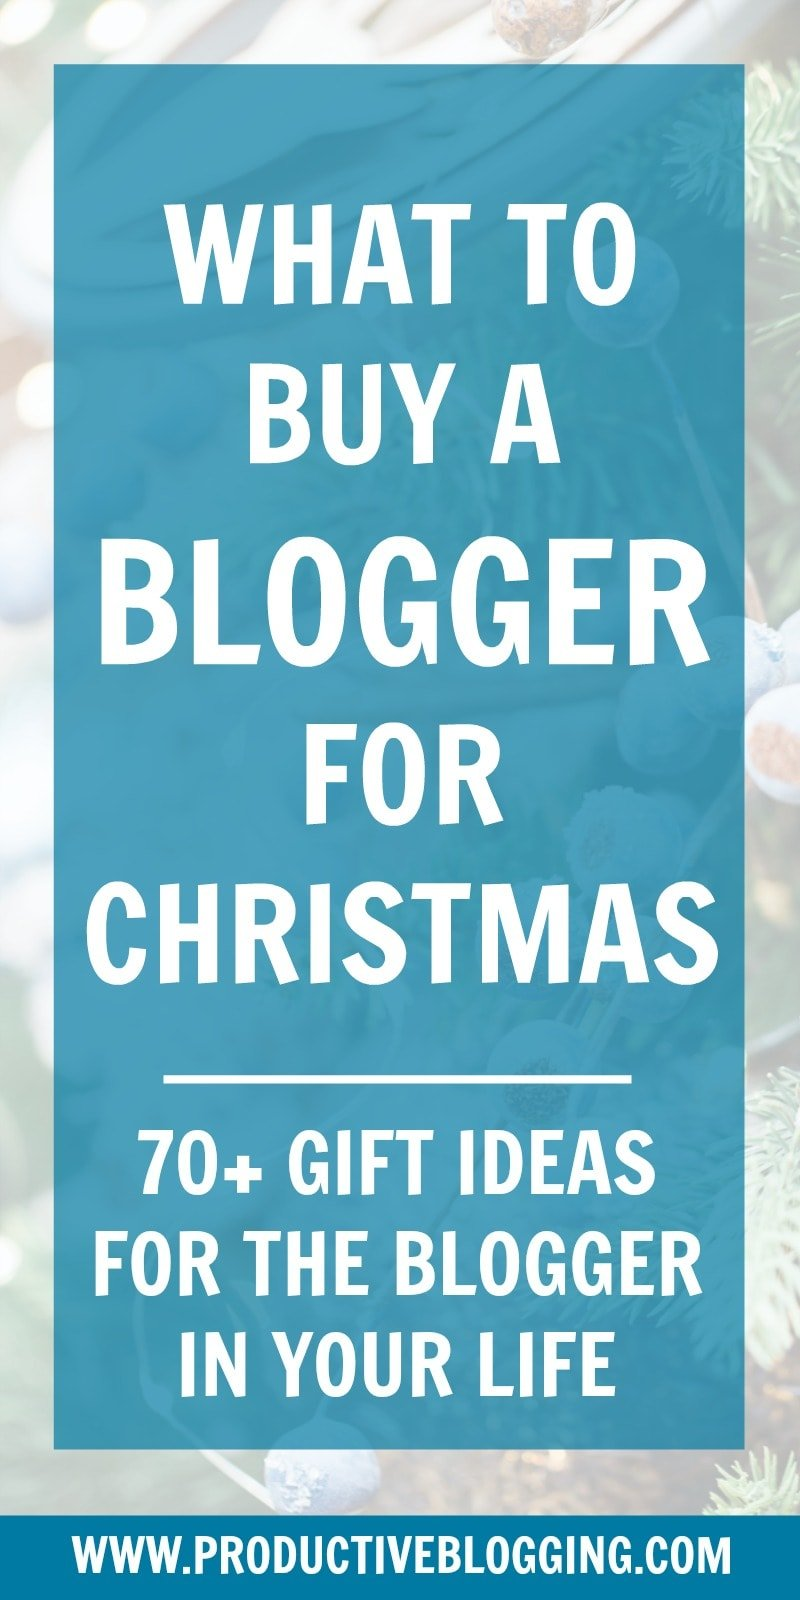 Wondering what to buy a blogger in your life for Christmas? Or are you a blogger who would like a 'done for you' list of Christmas present ideas to give to family and friends? Here's what to buy a blogger for Christmas… #christmas #christmaspresents #bloggerchristmaspresents #giftguide #bloggergiftguide #presentideasforbloggers #giftideasforbloggers #presentideas #giftideas #christmaspresentideasforbloggers #christmasgiftguideforbloggers #christmasgiftideasforbloggers #productiveblogging